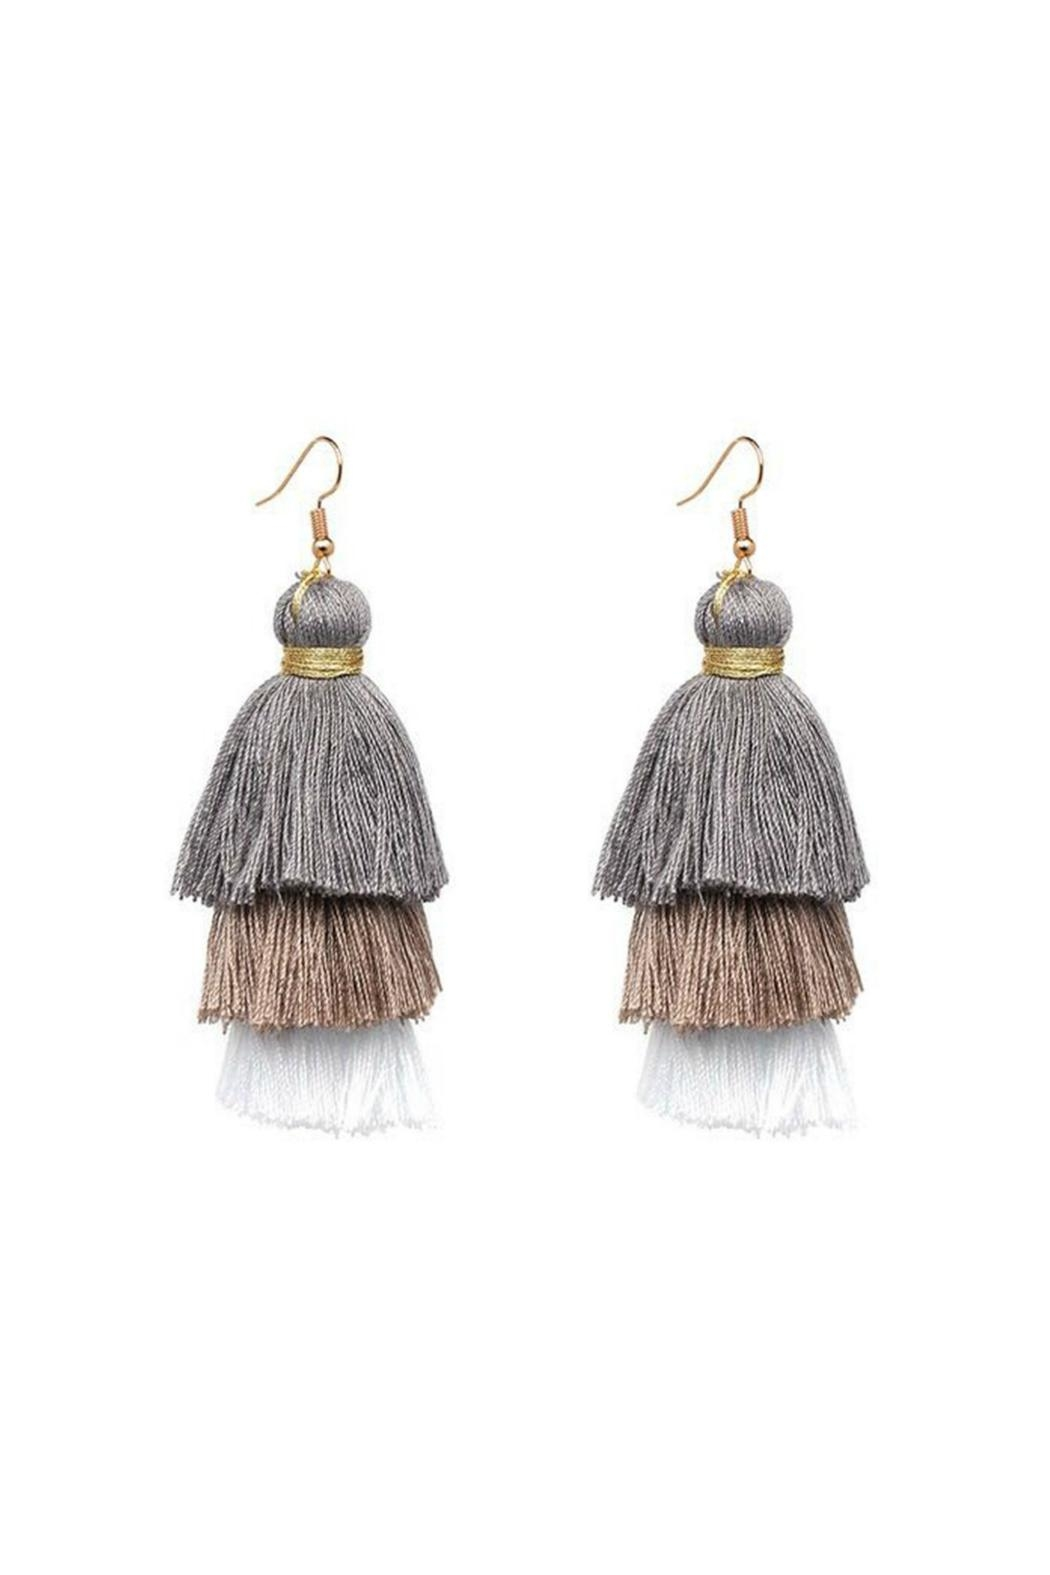 Gemma Collection Ombre Tassel Earrings - Main Image